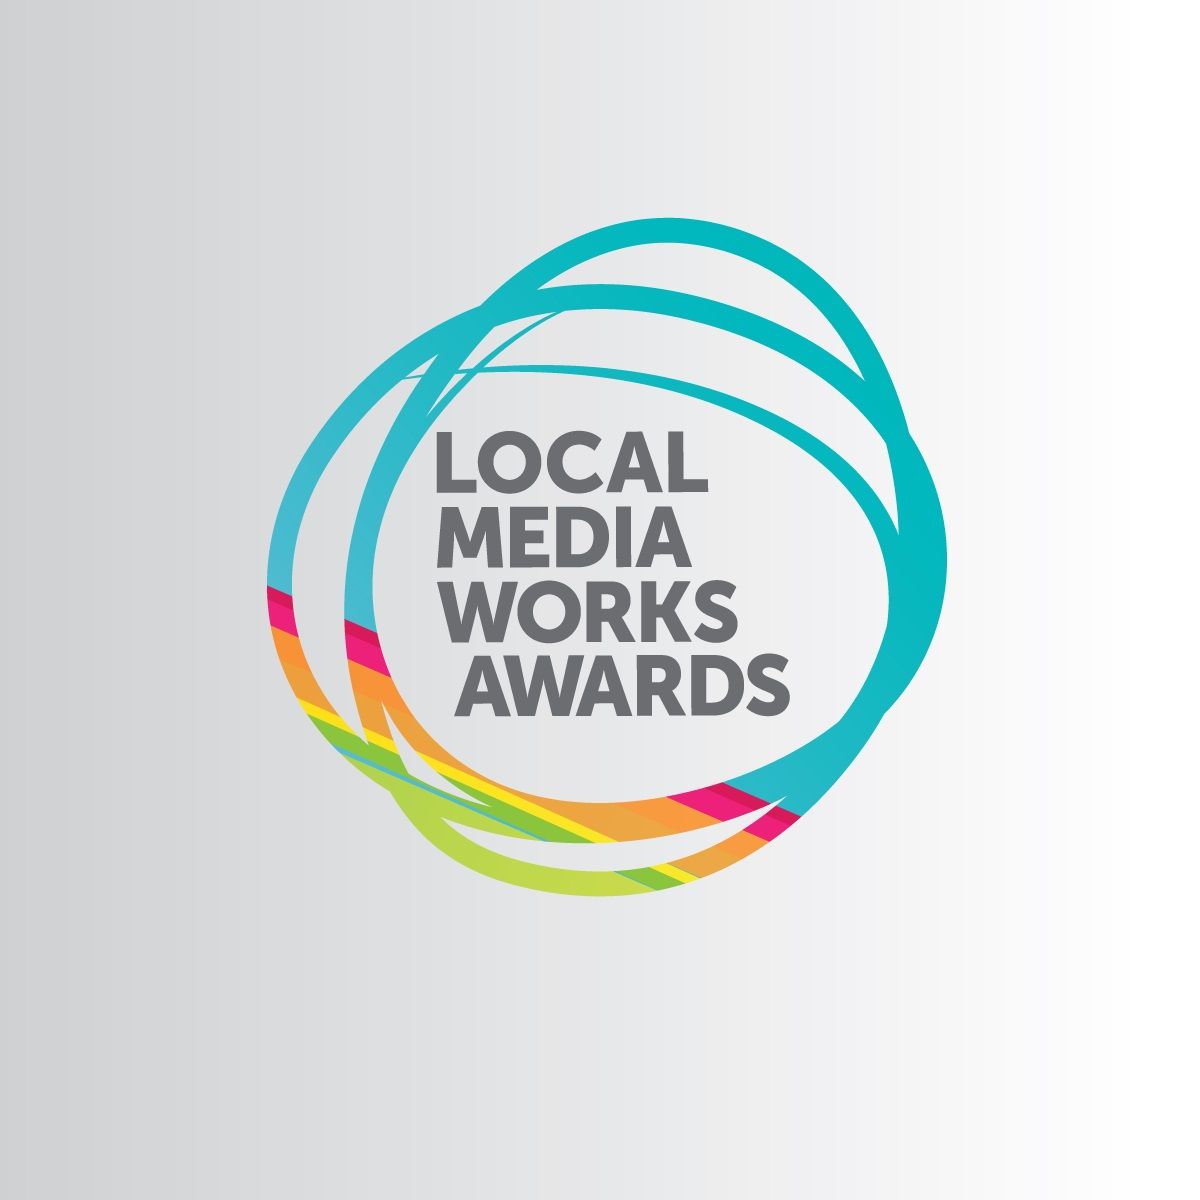 Local Media Works Awards to Launch with Airbus Brief